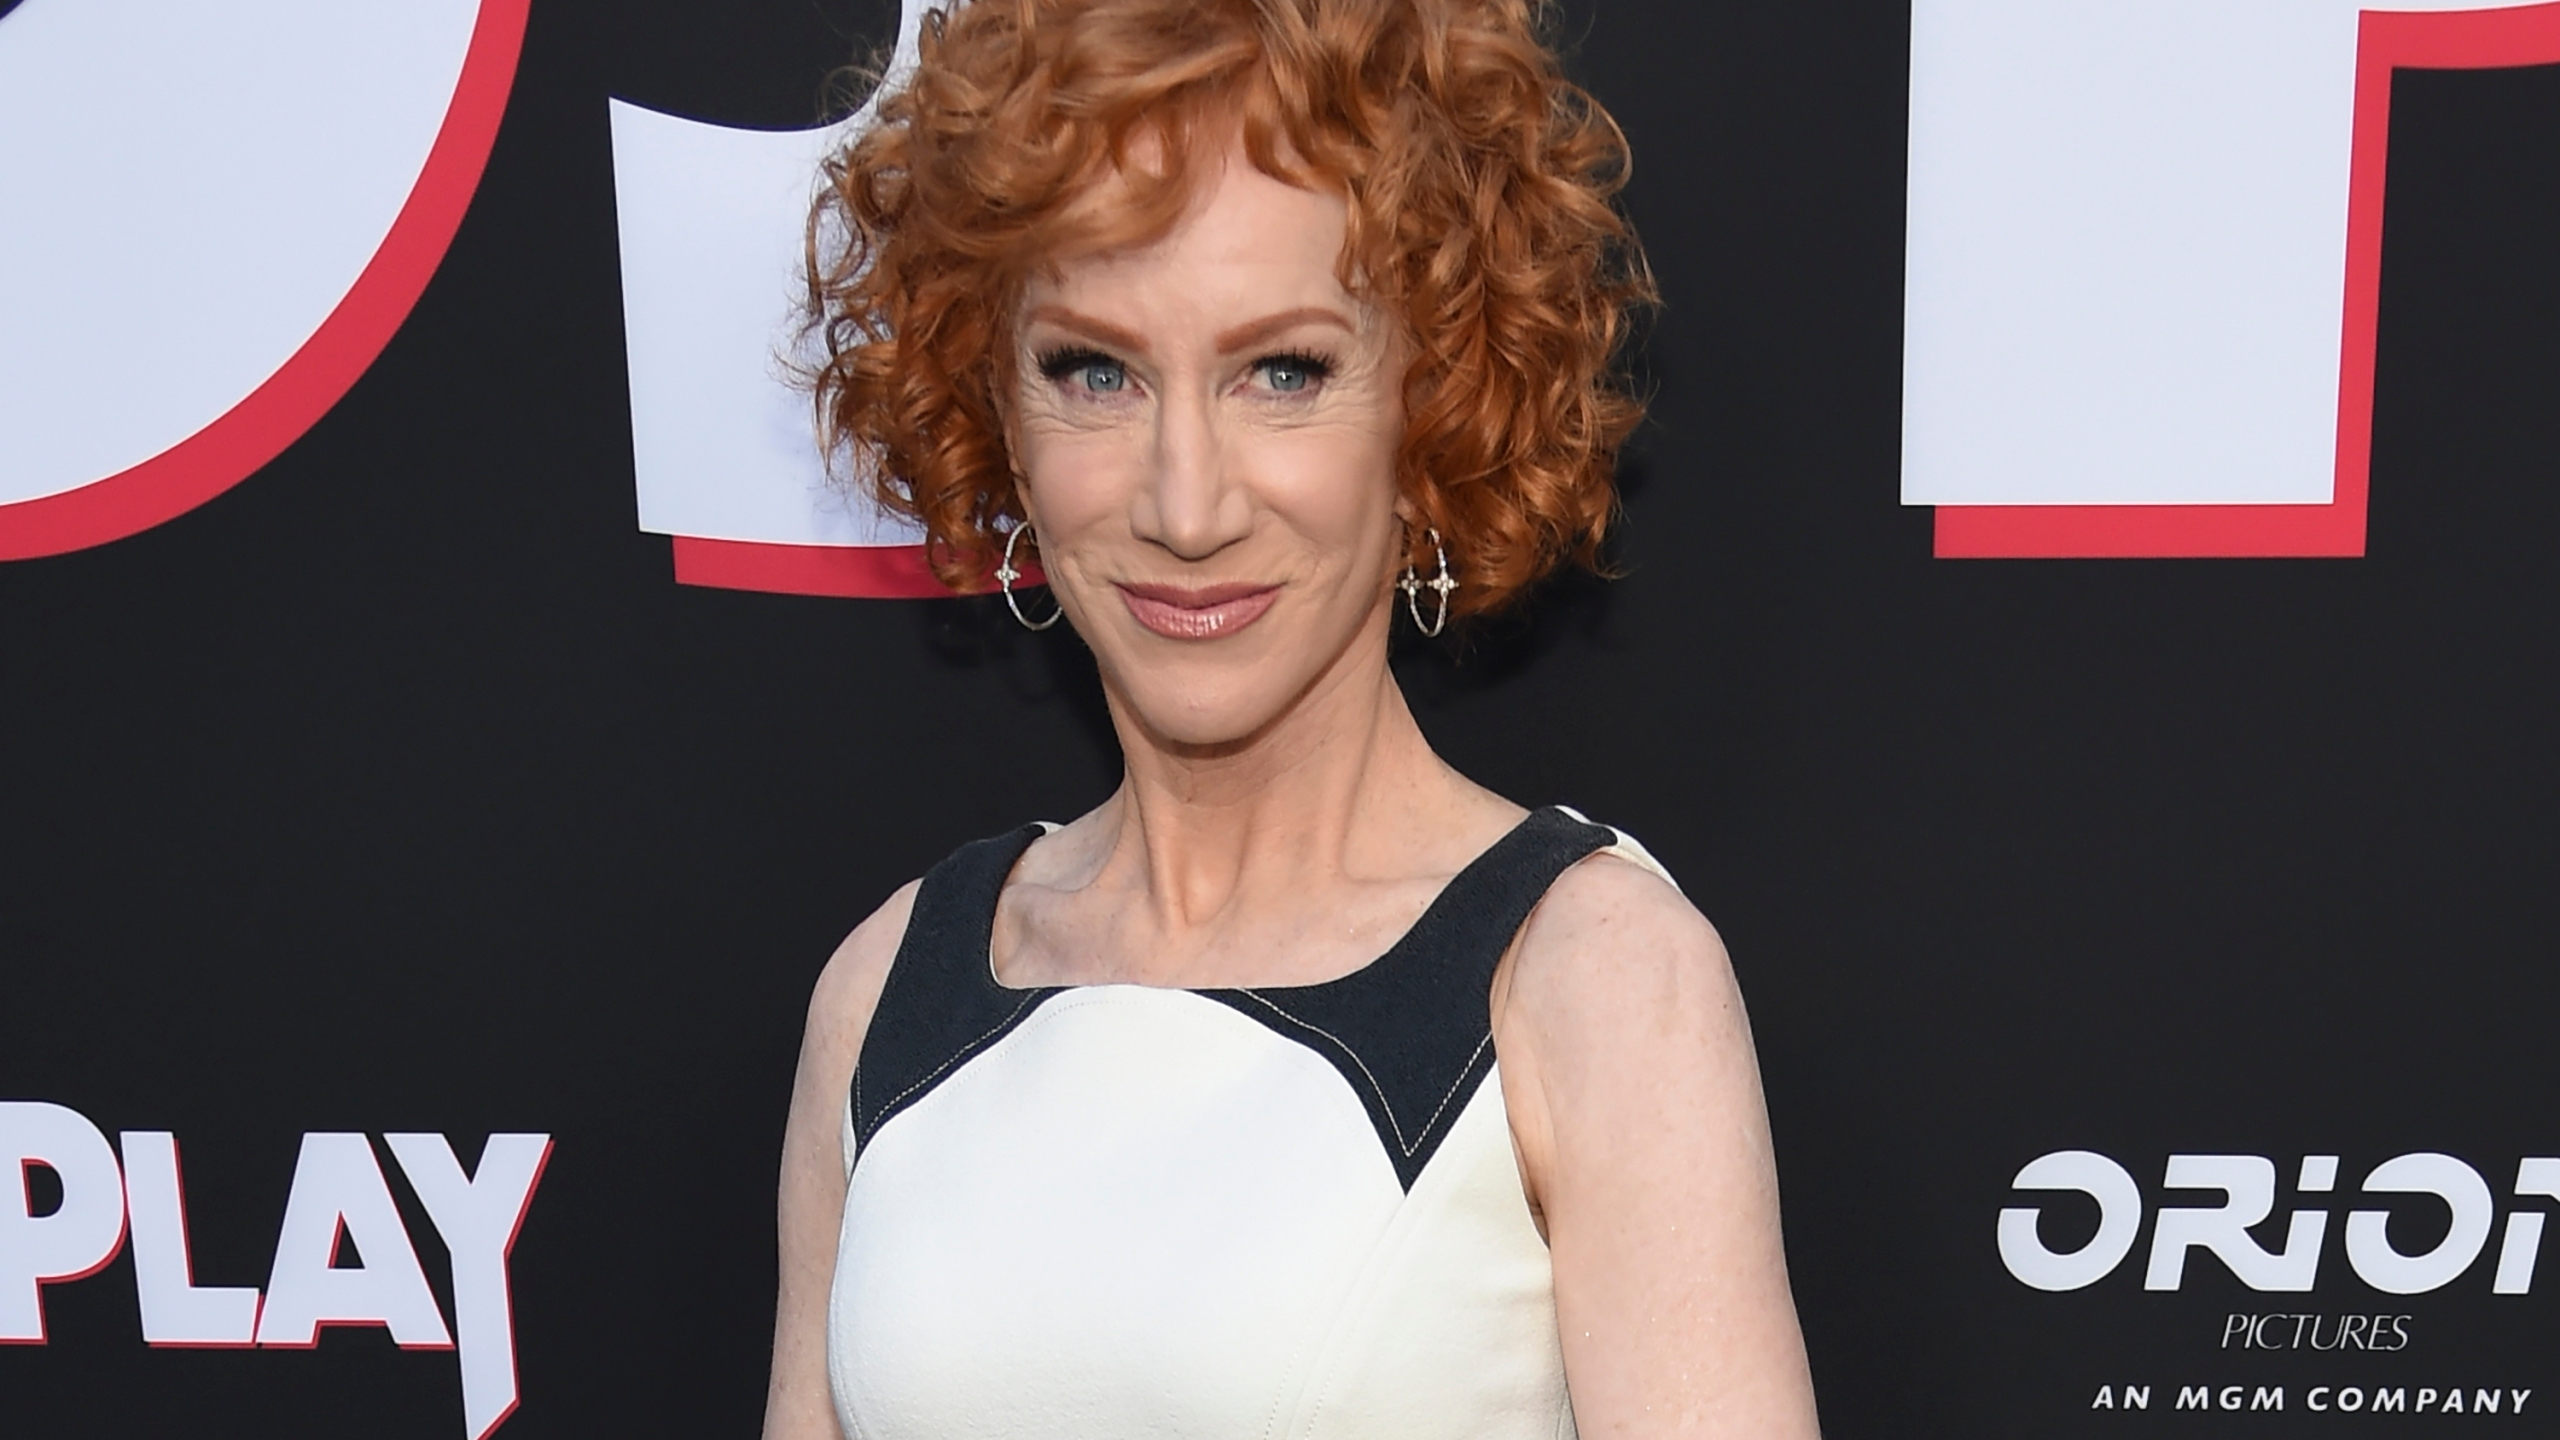 """Comedian Kathy Griffin appears at the premiere of the film """"Child's Play"""" in Los Angeles on June 19, 2019. (Chris Pizzello/Invision/AP, File)"""